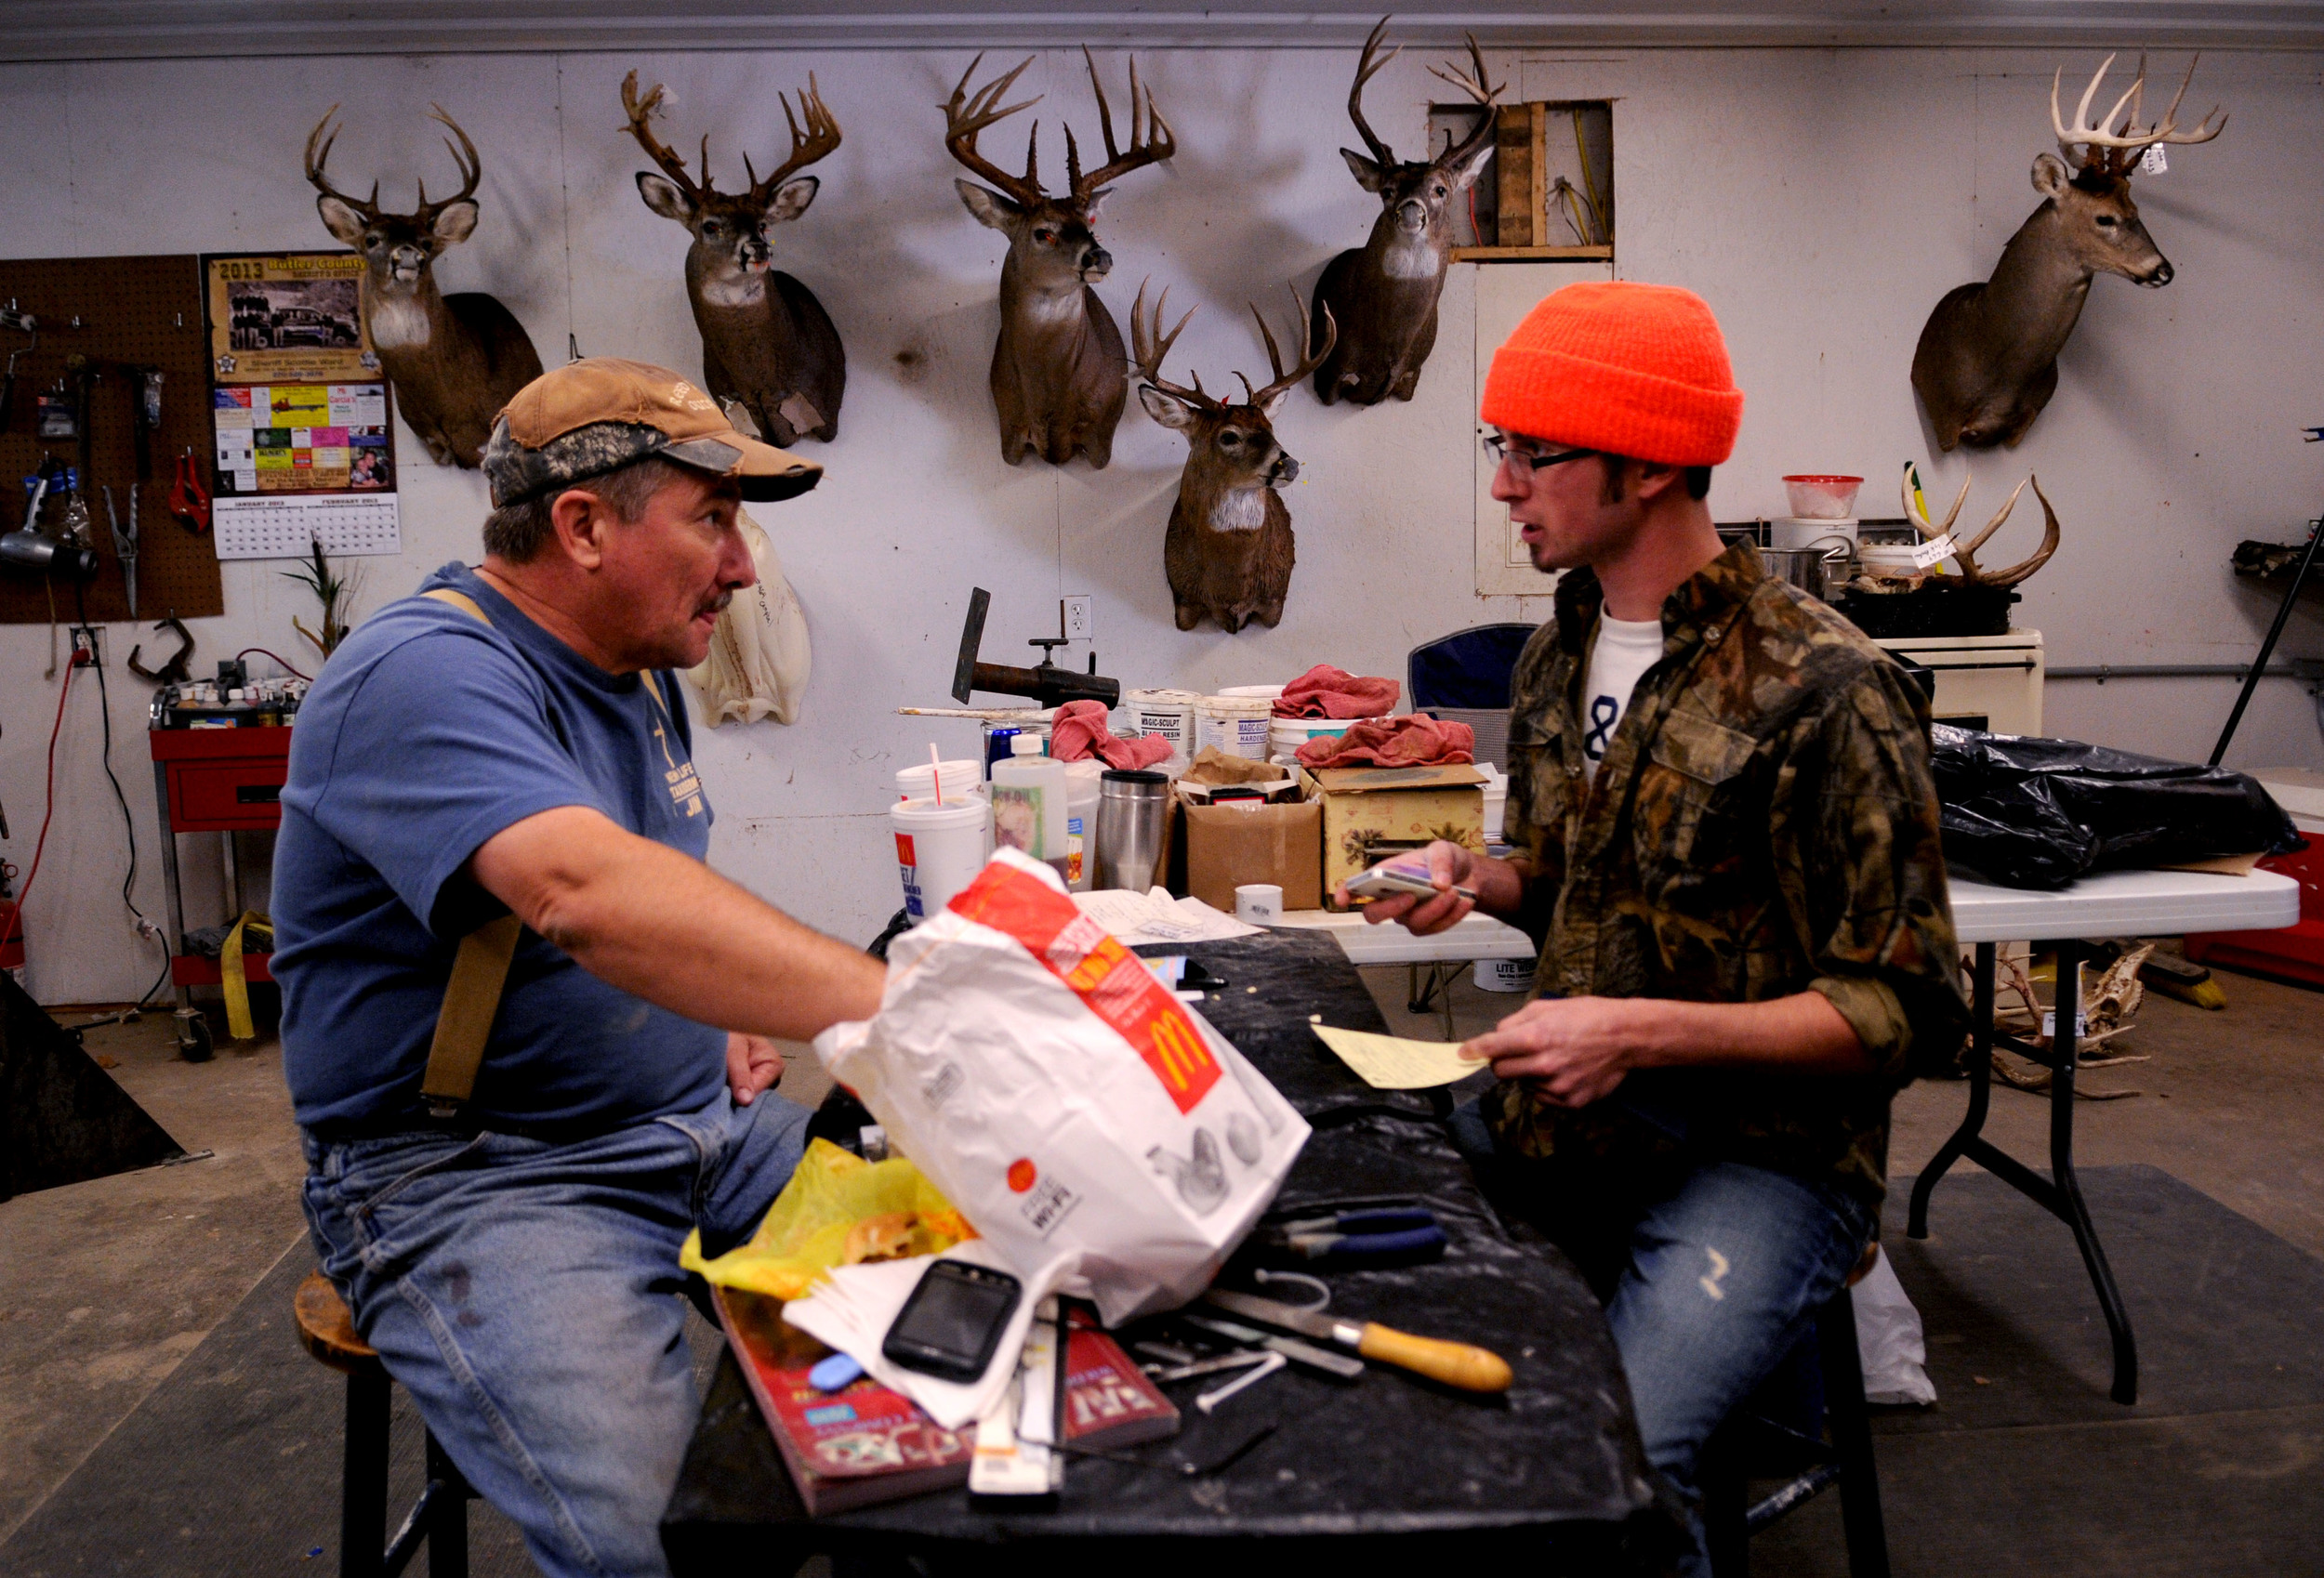 Jim McIntosh (left), of Morgantown, Kentucky, eats lunch and talks with customer Justus Eaton (right), on Friday, November sixteenth, about the specifics of what kind of deer mount he would like. Eaton traveled from North Carolina specifically to hunt deer in Kentucky.